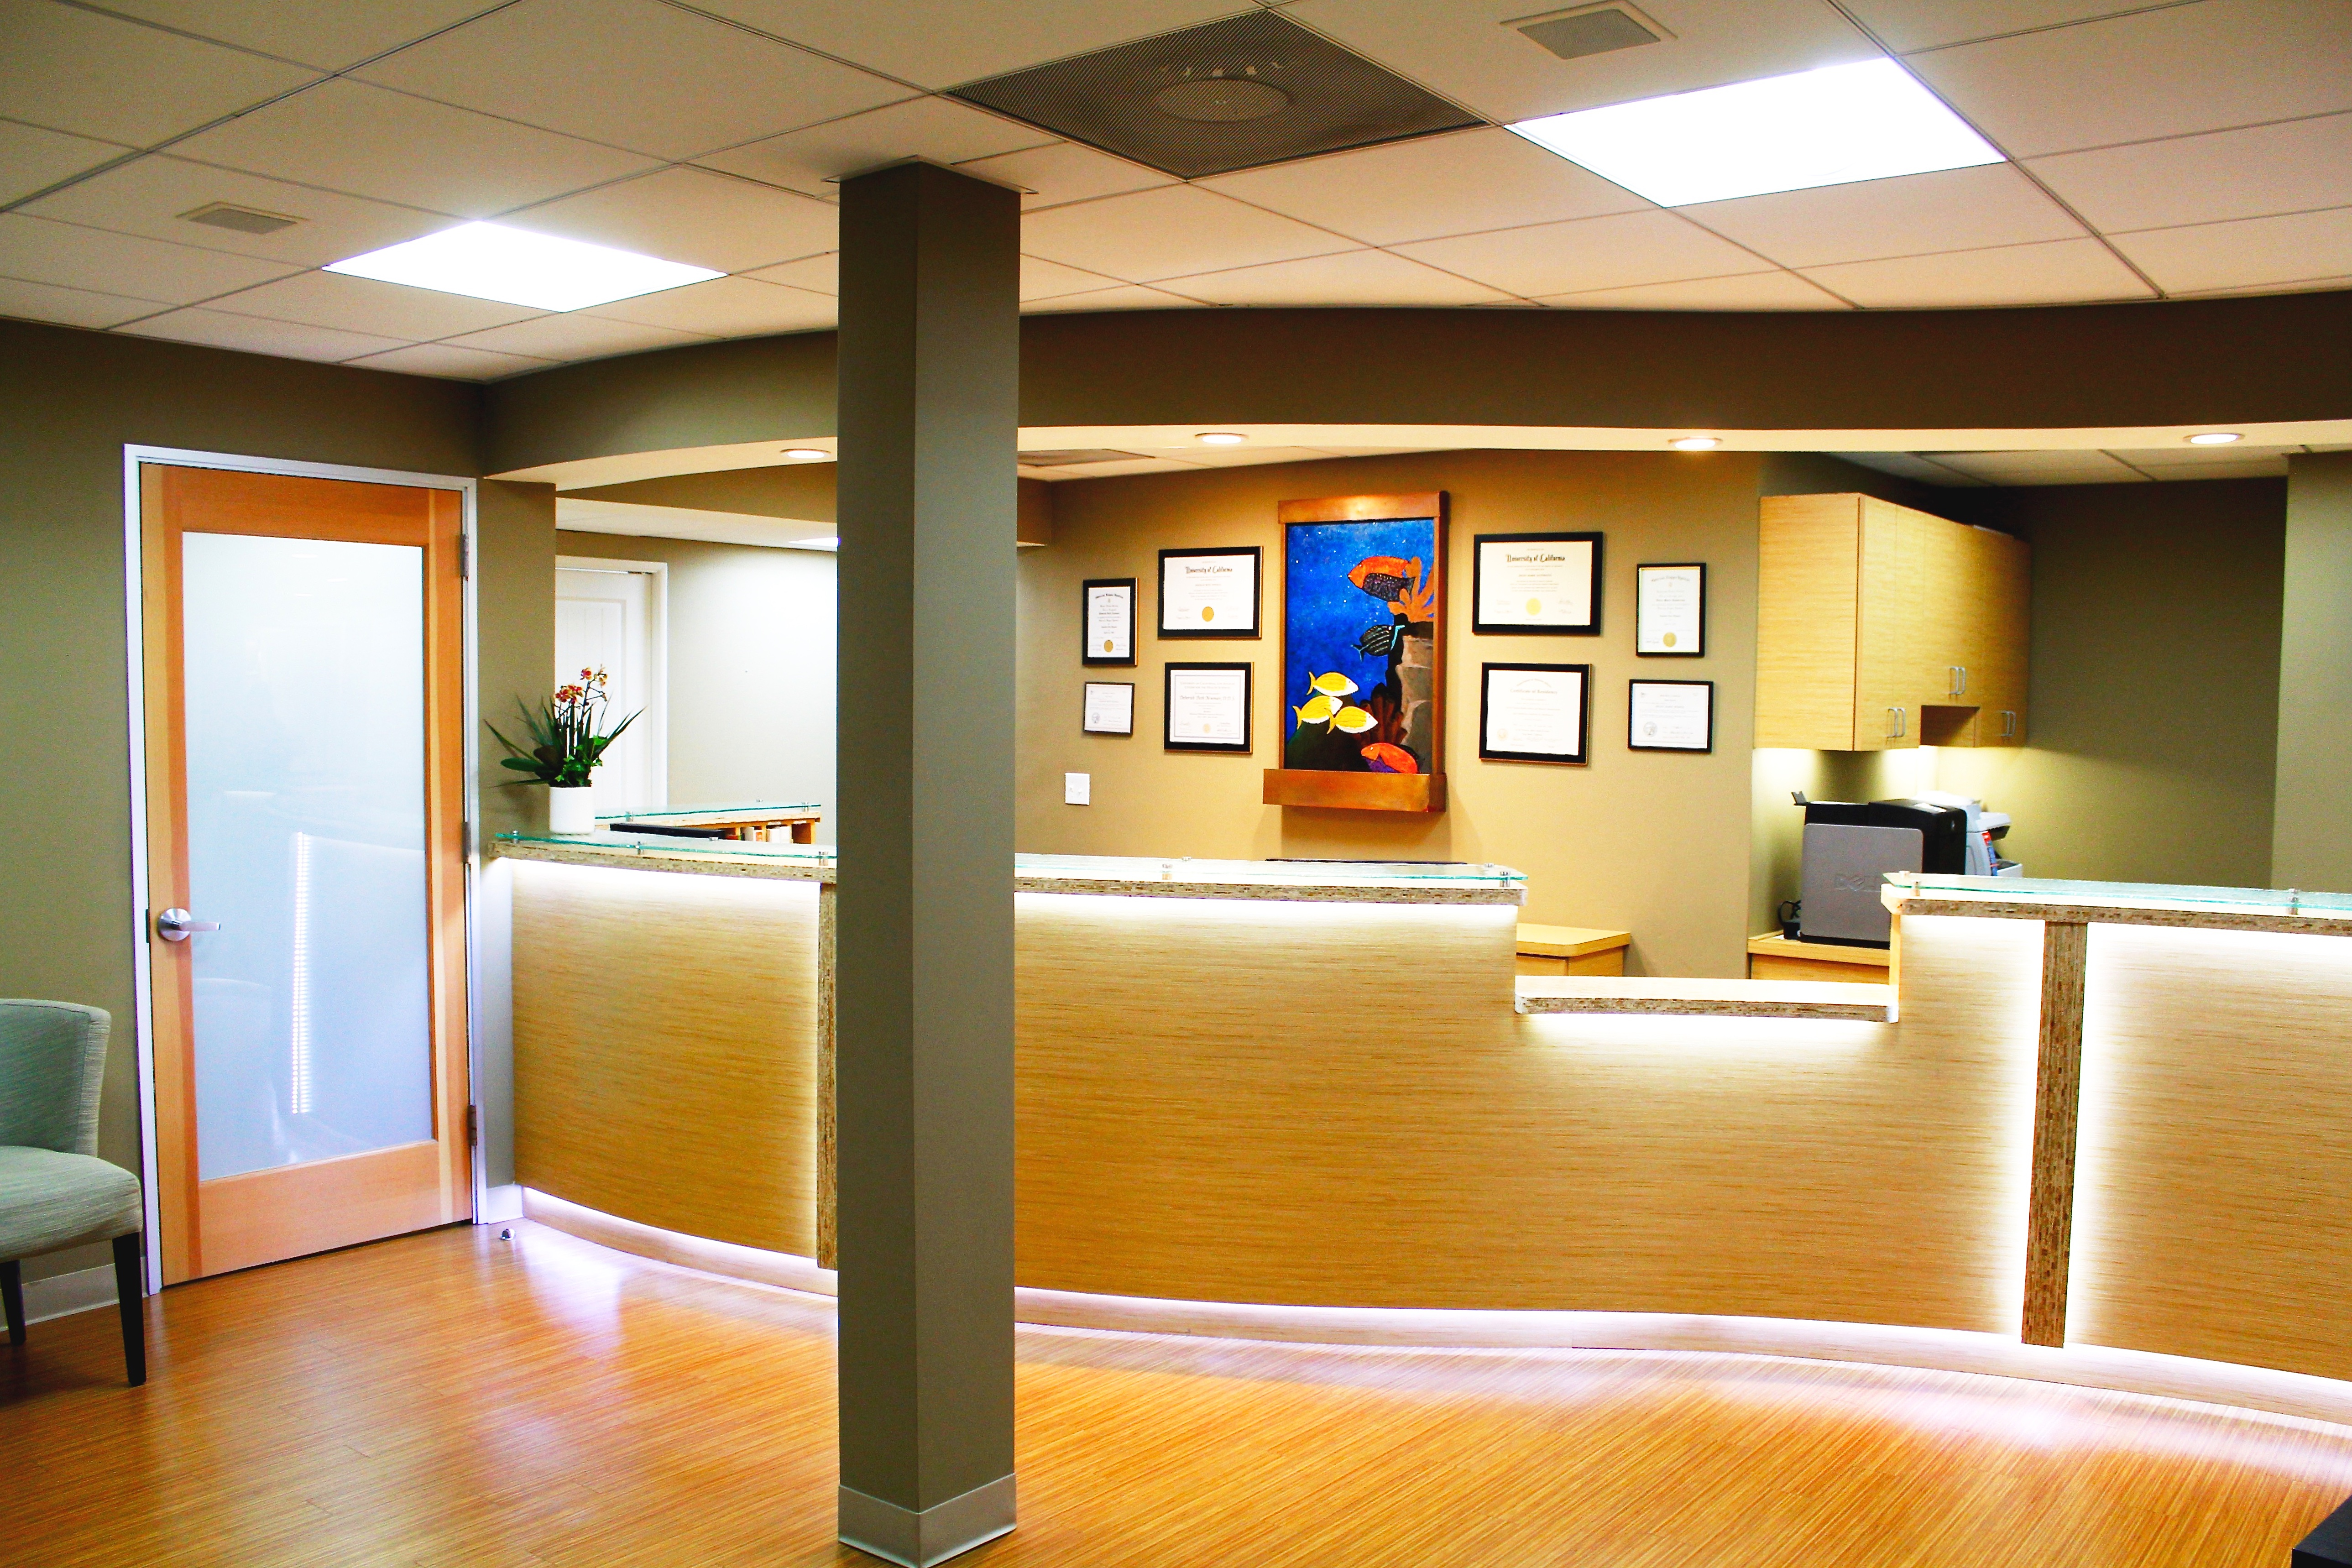 Premiere Dental Group: Dr. Helen Hooper DDS reviews | Cosmetic Dentists at 4560 Admiralty Way - Marina Del Rey CA